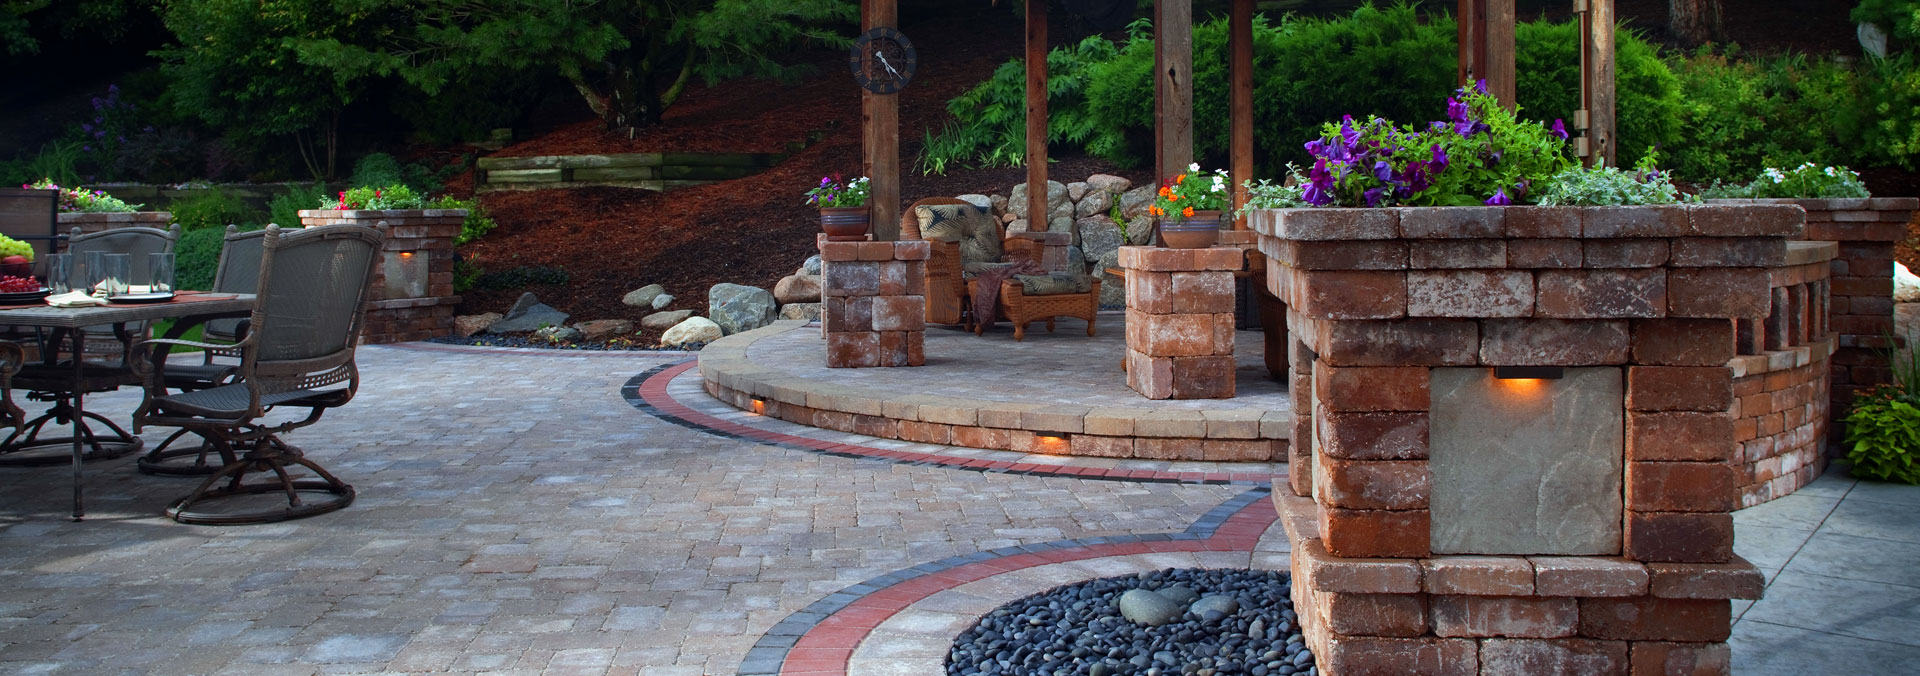 R. Lacy Interlocking Pavers